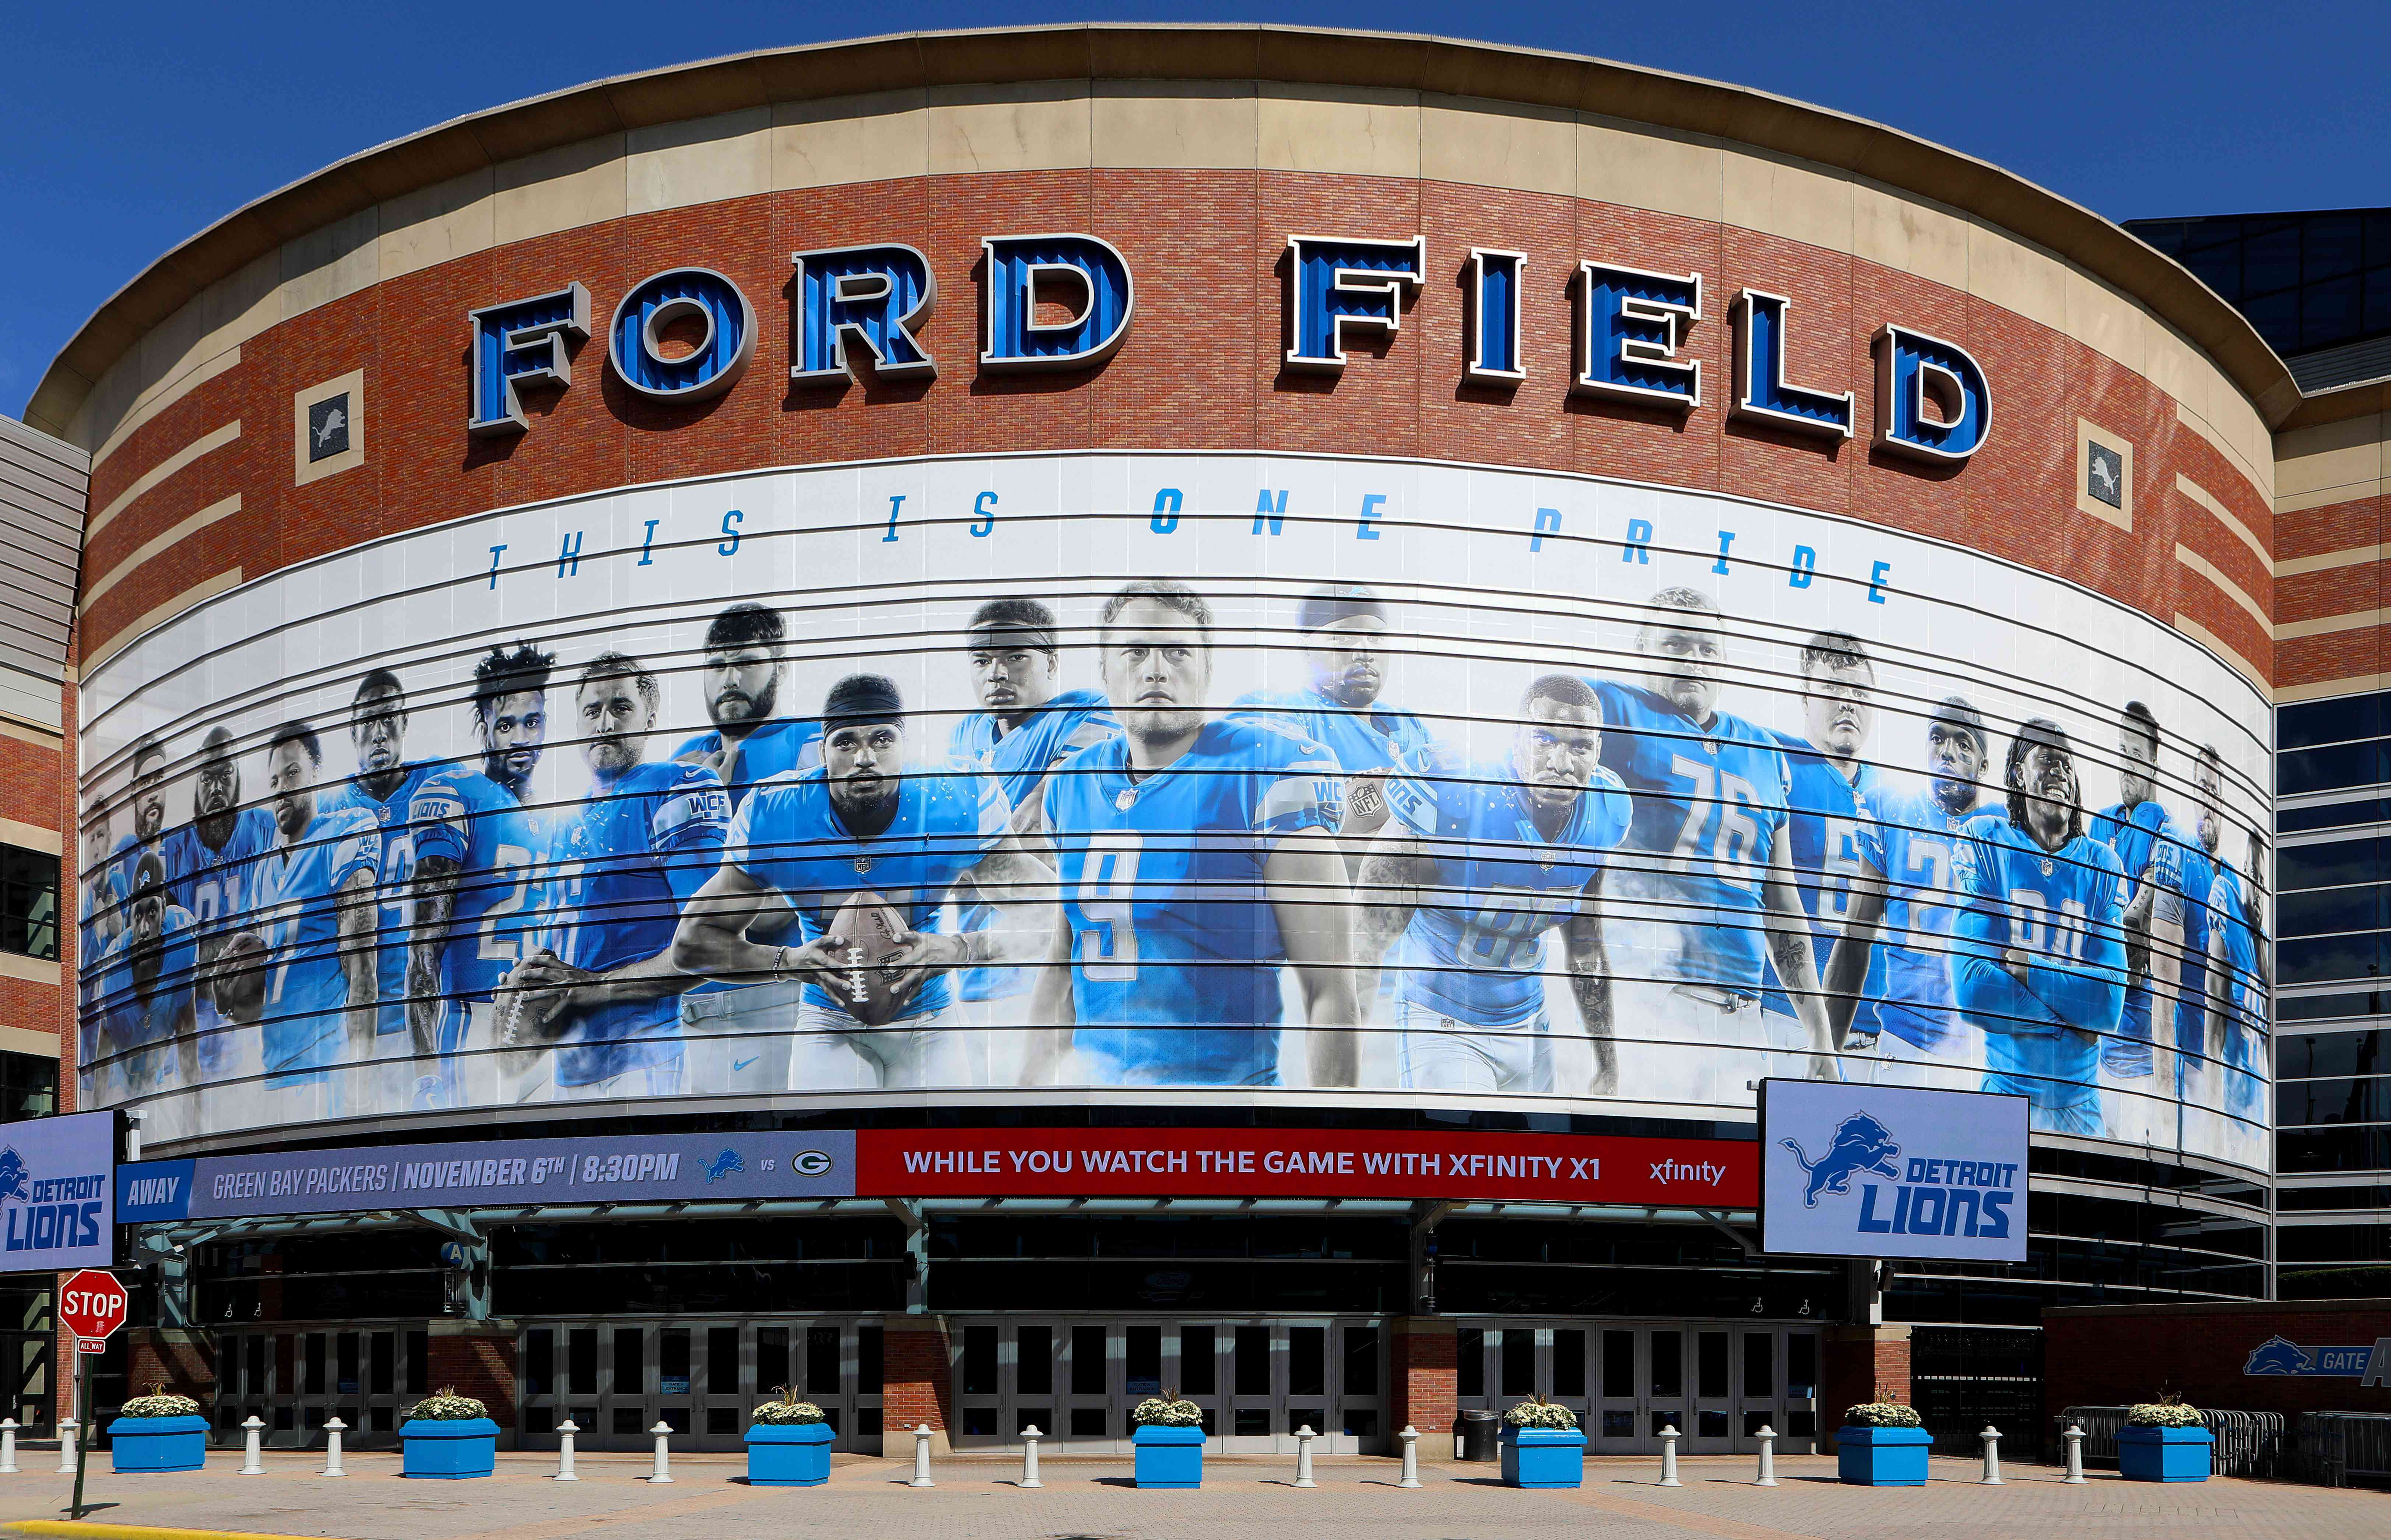 Ford Field, home of the Detroit Lions football team in Detroit, Michigan